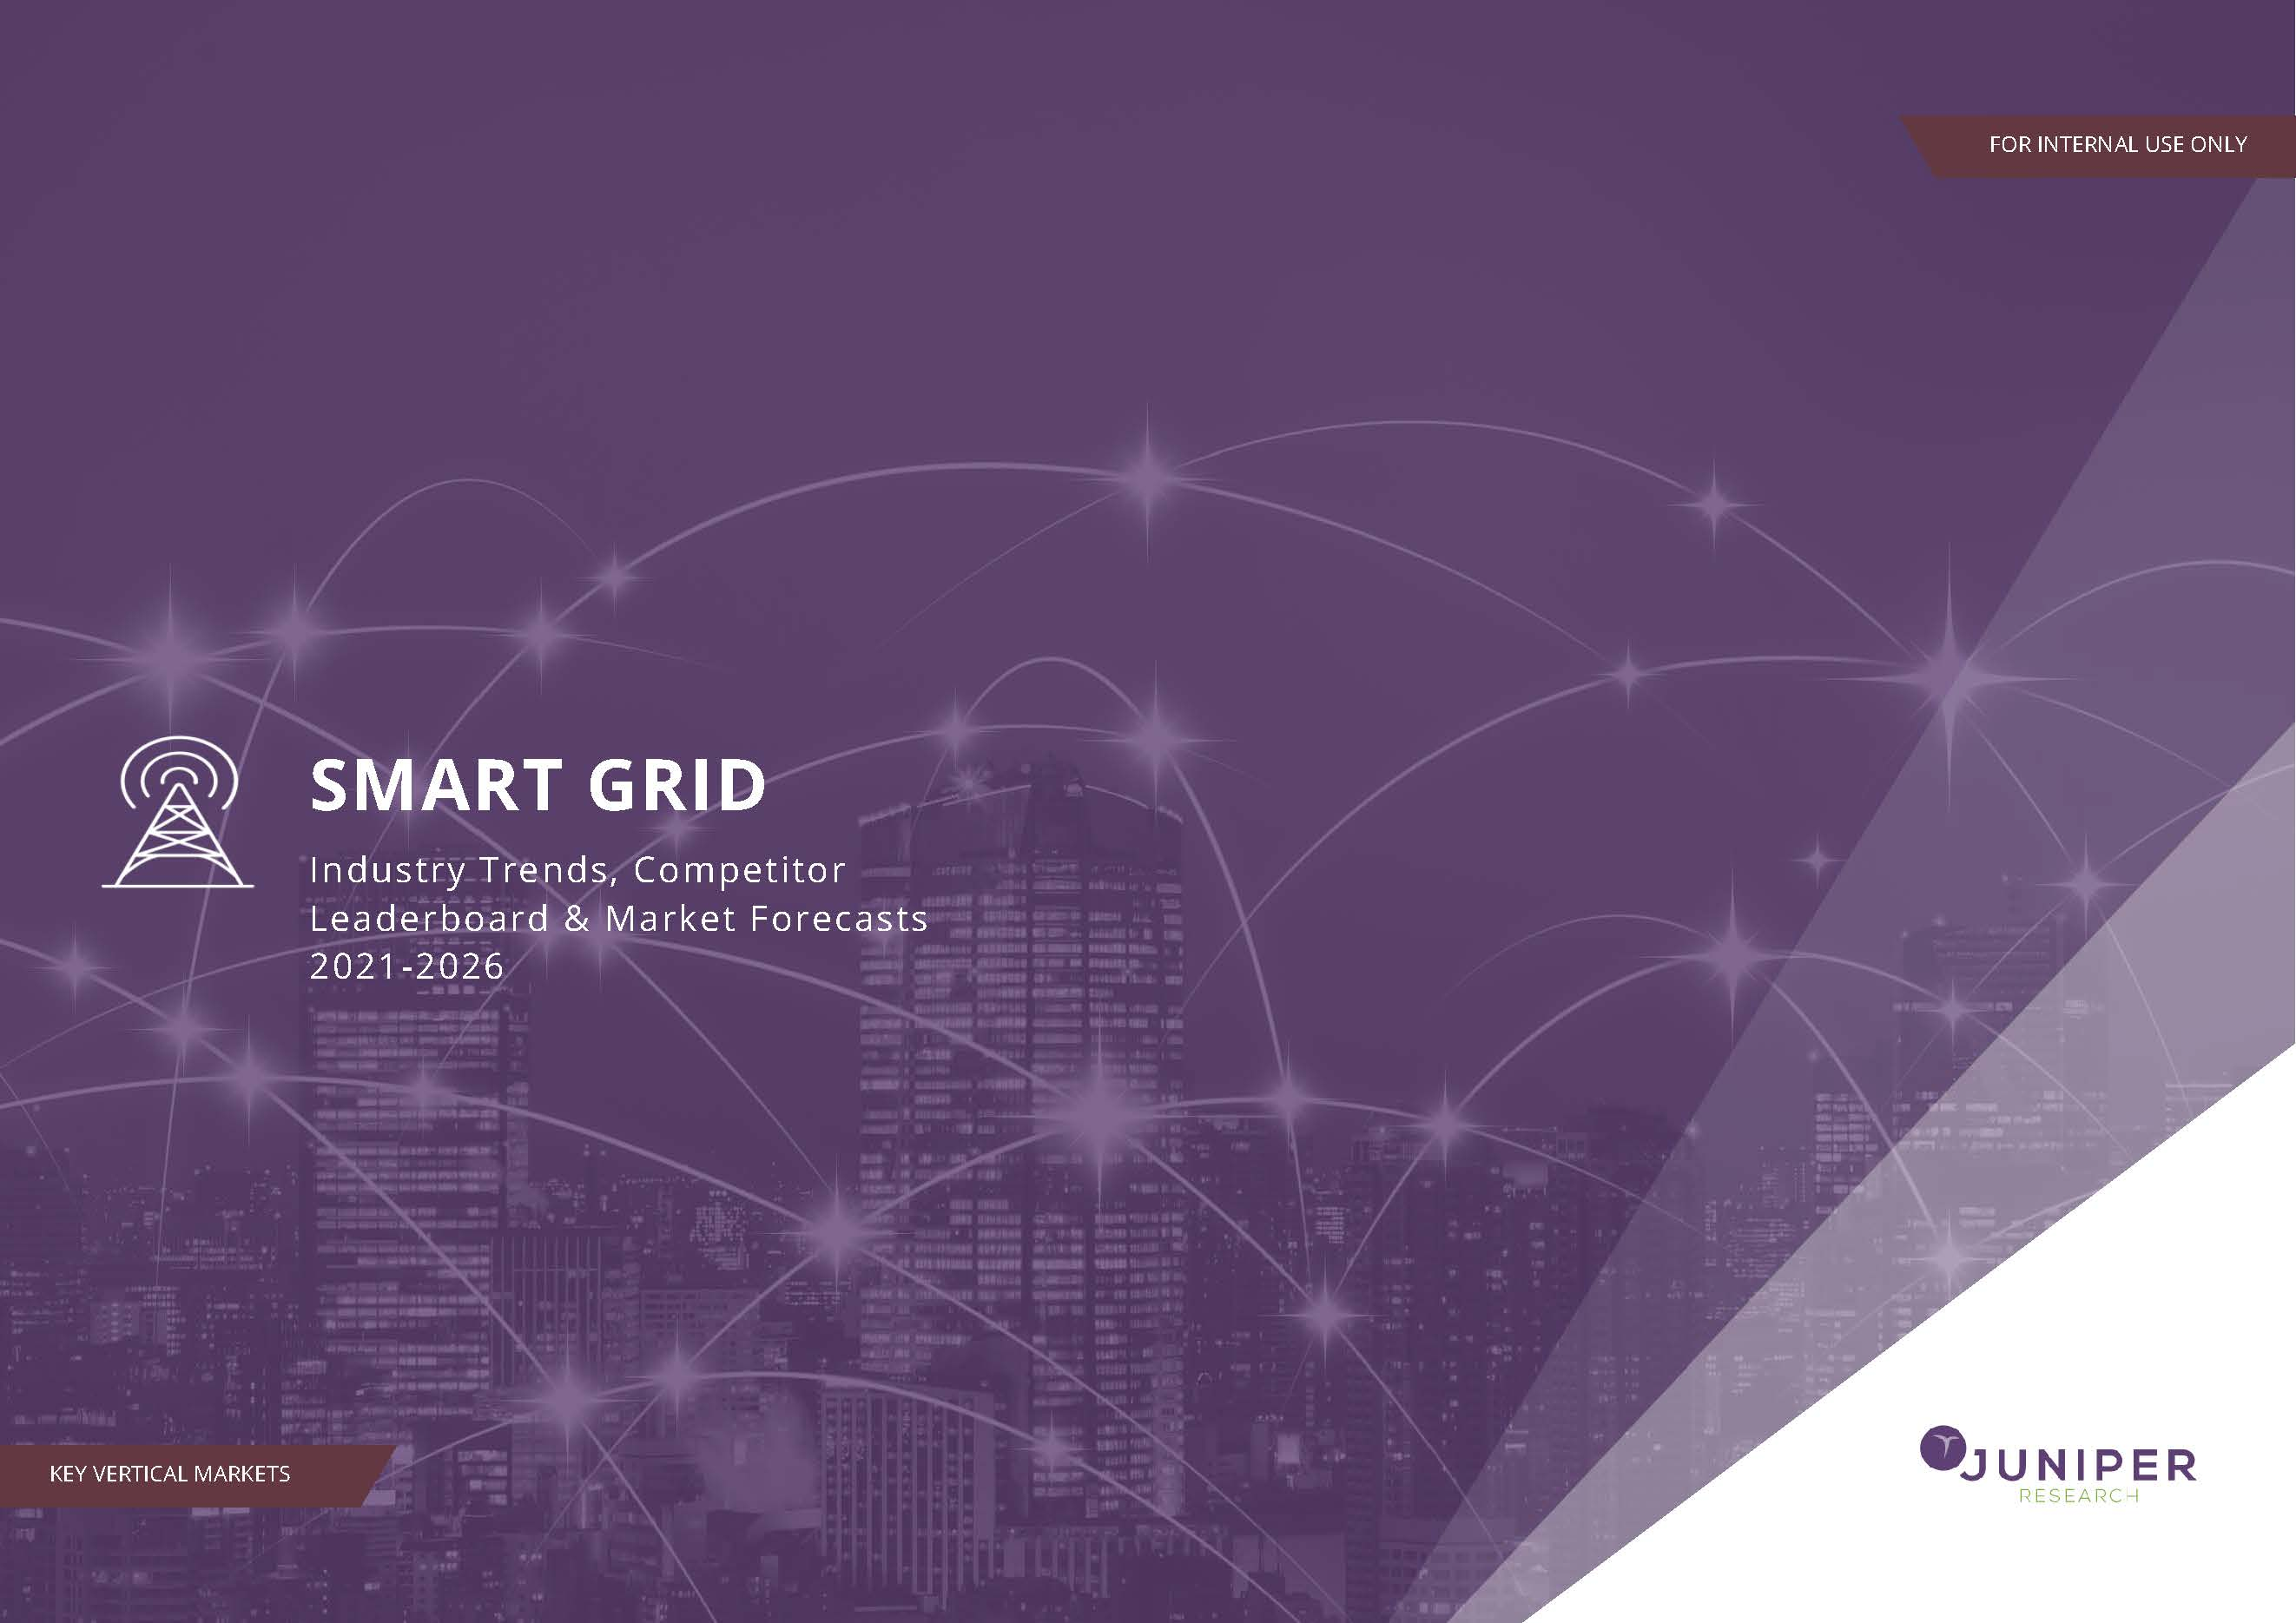 Global Smart Grid Deployment to Save over 1,000 Terawatt Hours in Energy by 2026, as Sustainability Drives Deployment